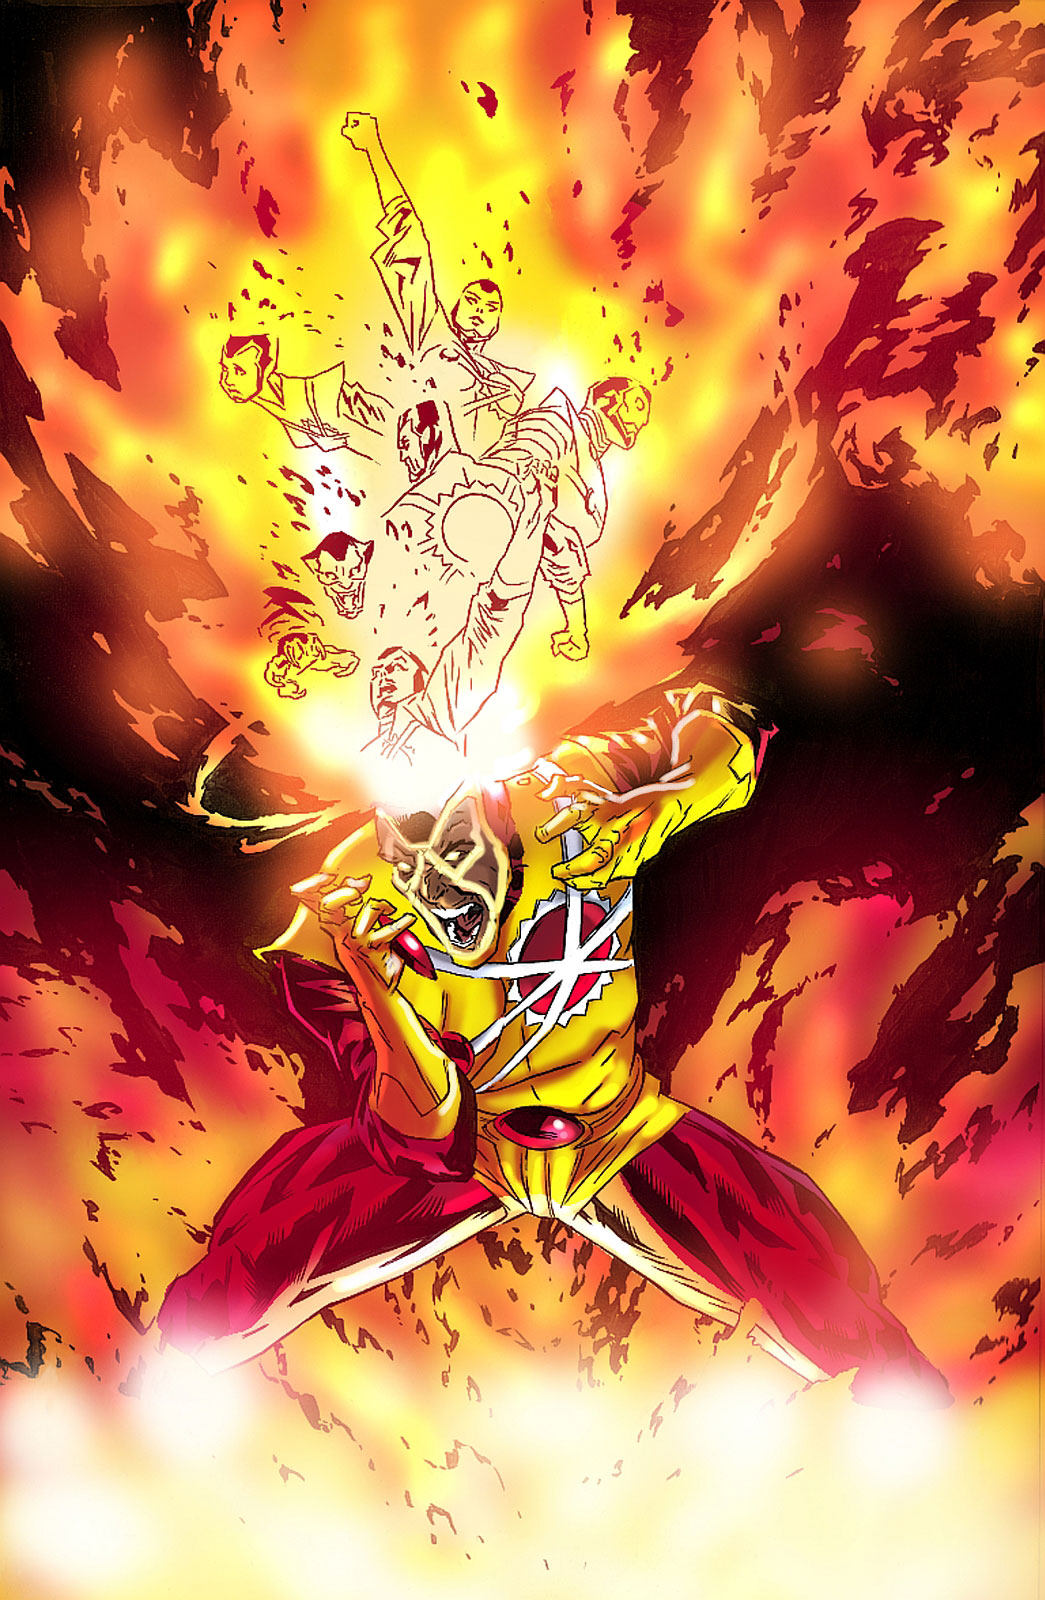 Firestorm volume III artwork by Lewis Larosa, colored by Tom Smith, from the Fizzit blog